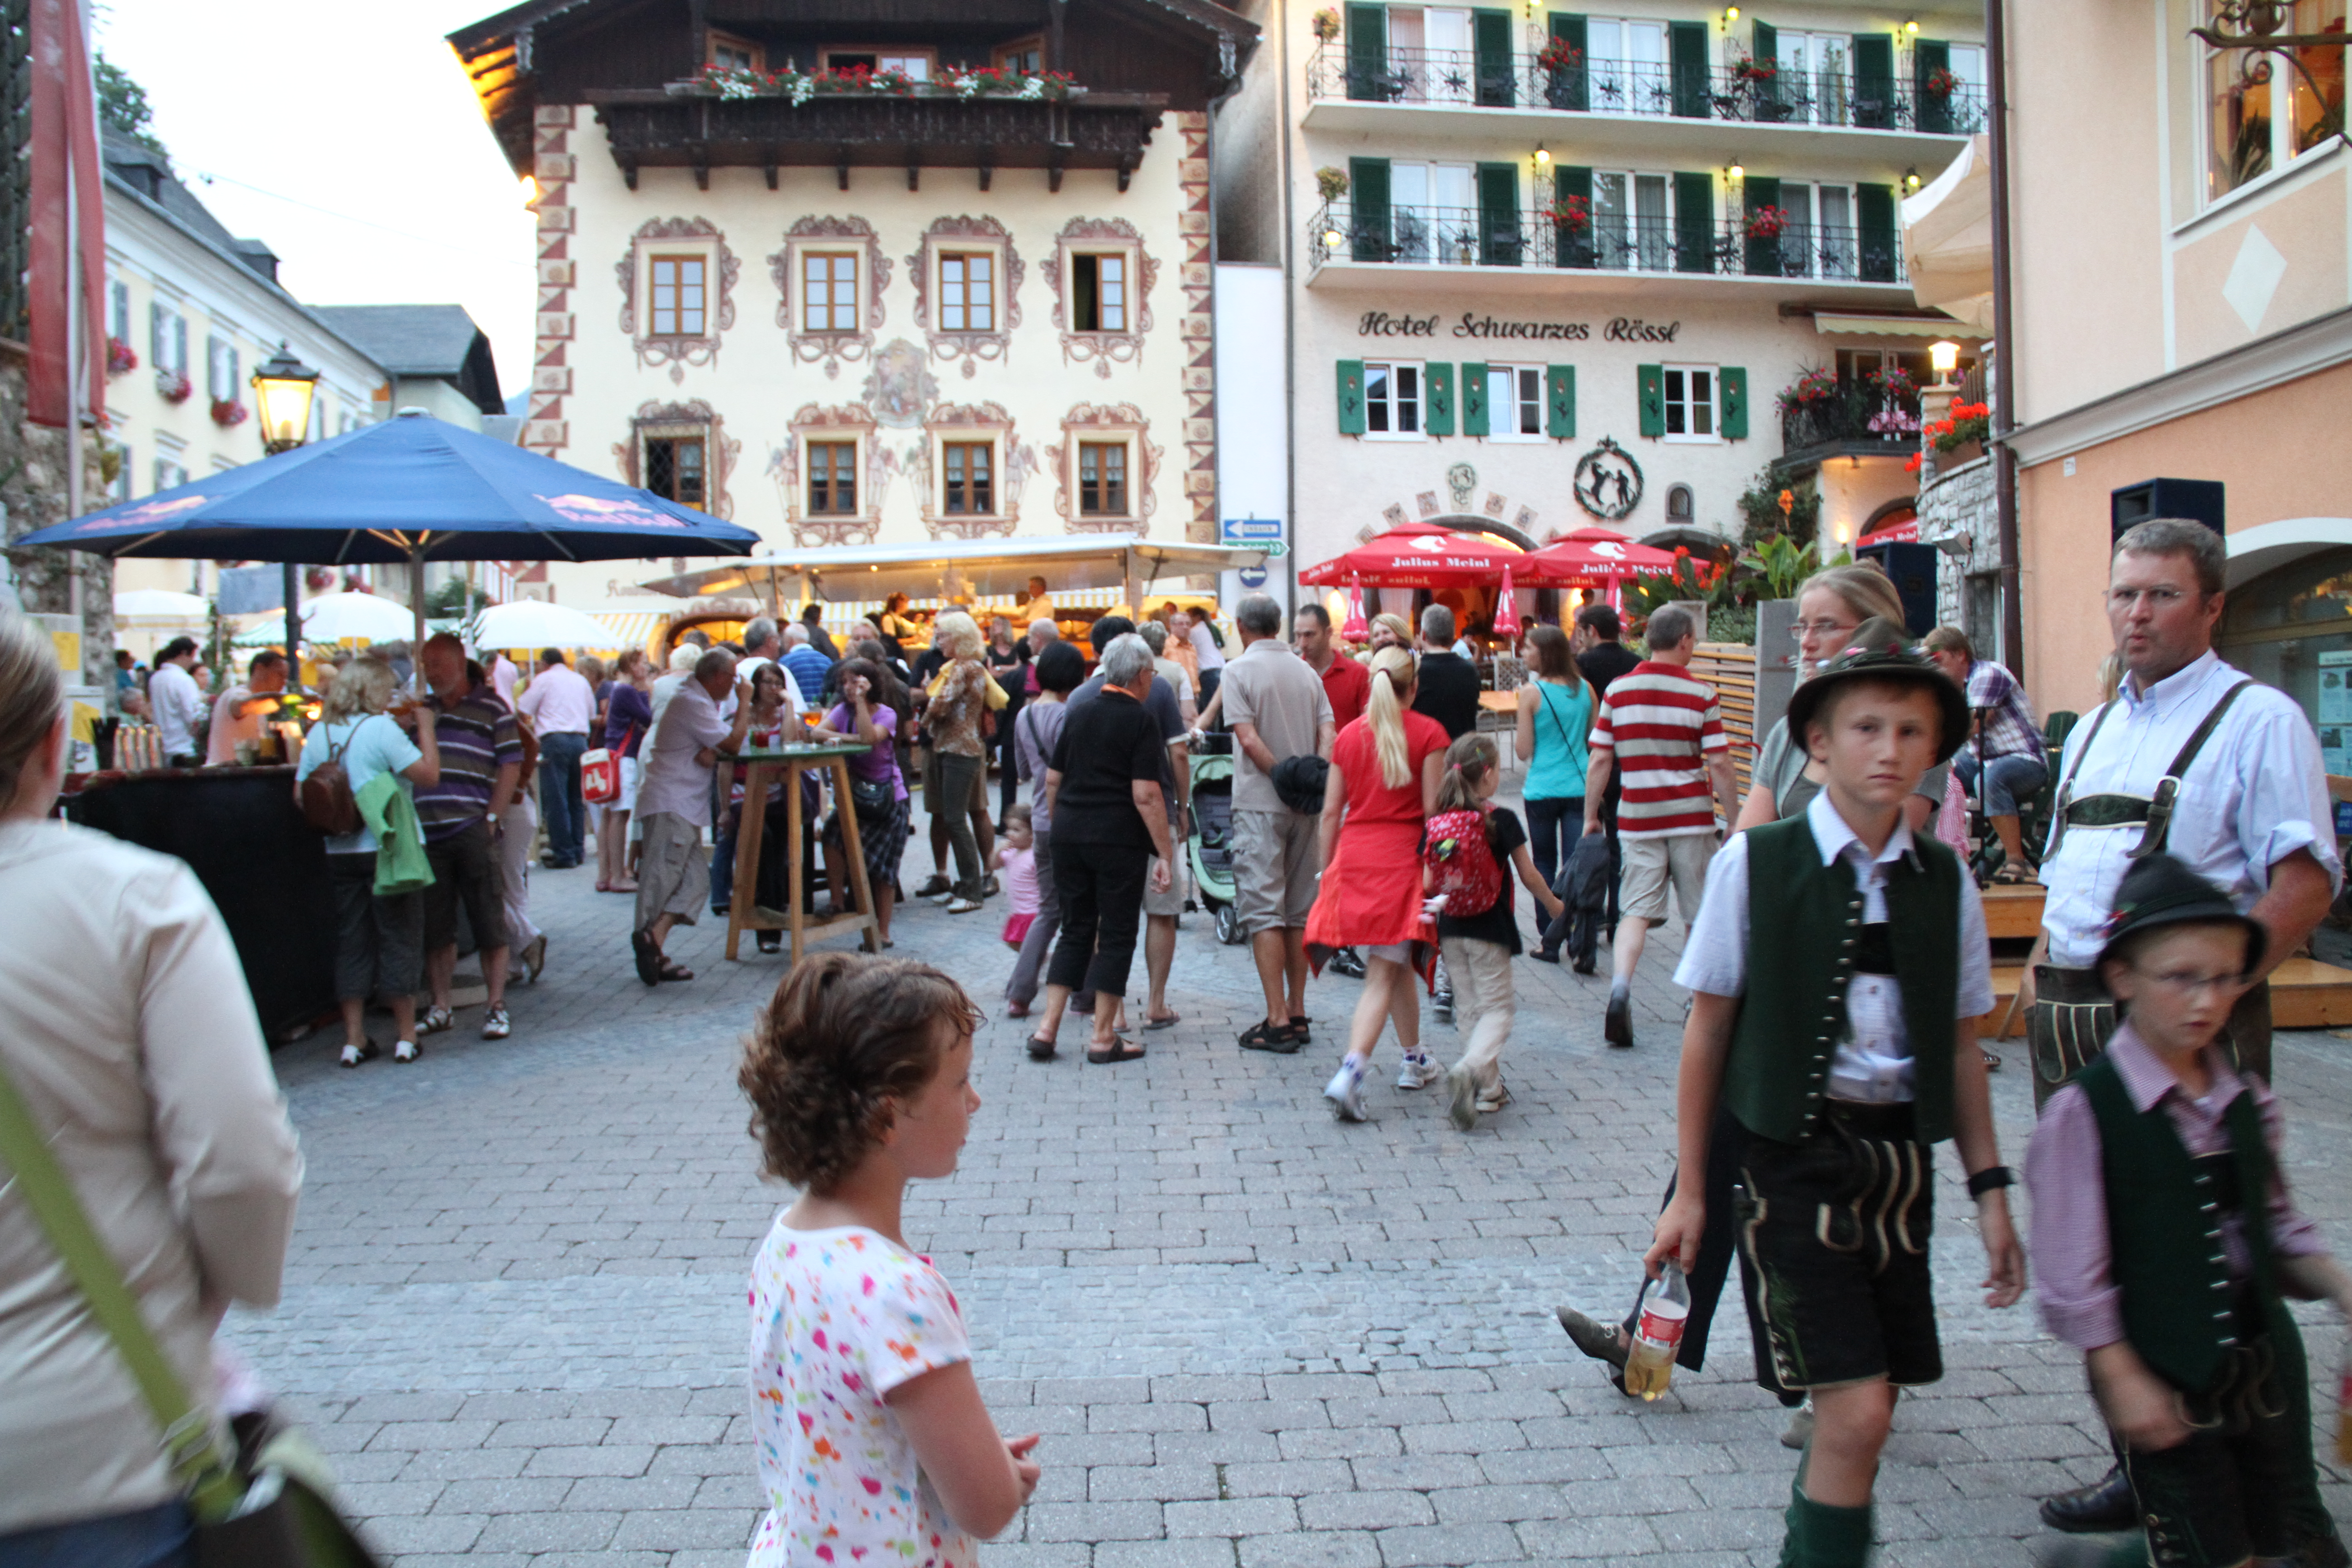 St wolfgang im salzkammergut from spaetzle to spaten sydney at the beer festival in st wolfgang austria sciox Images